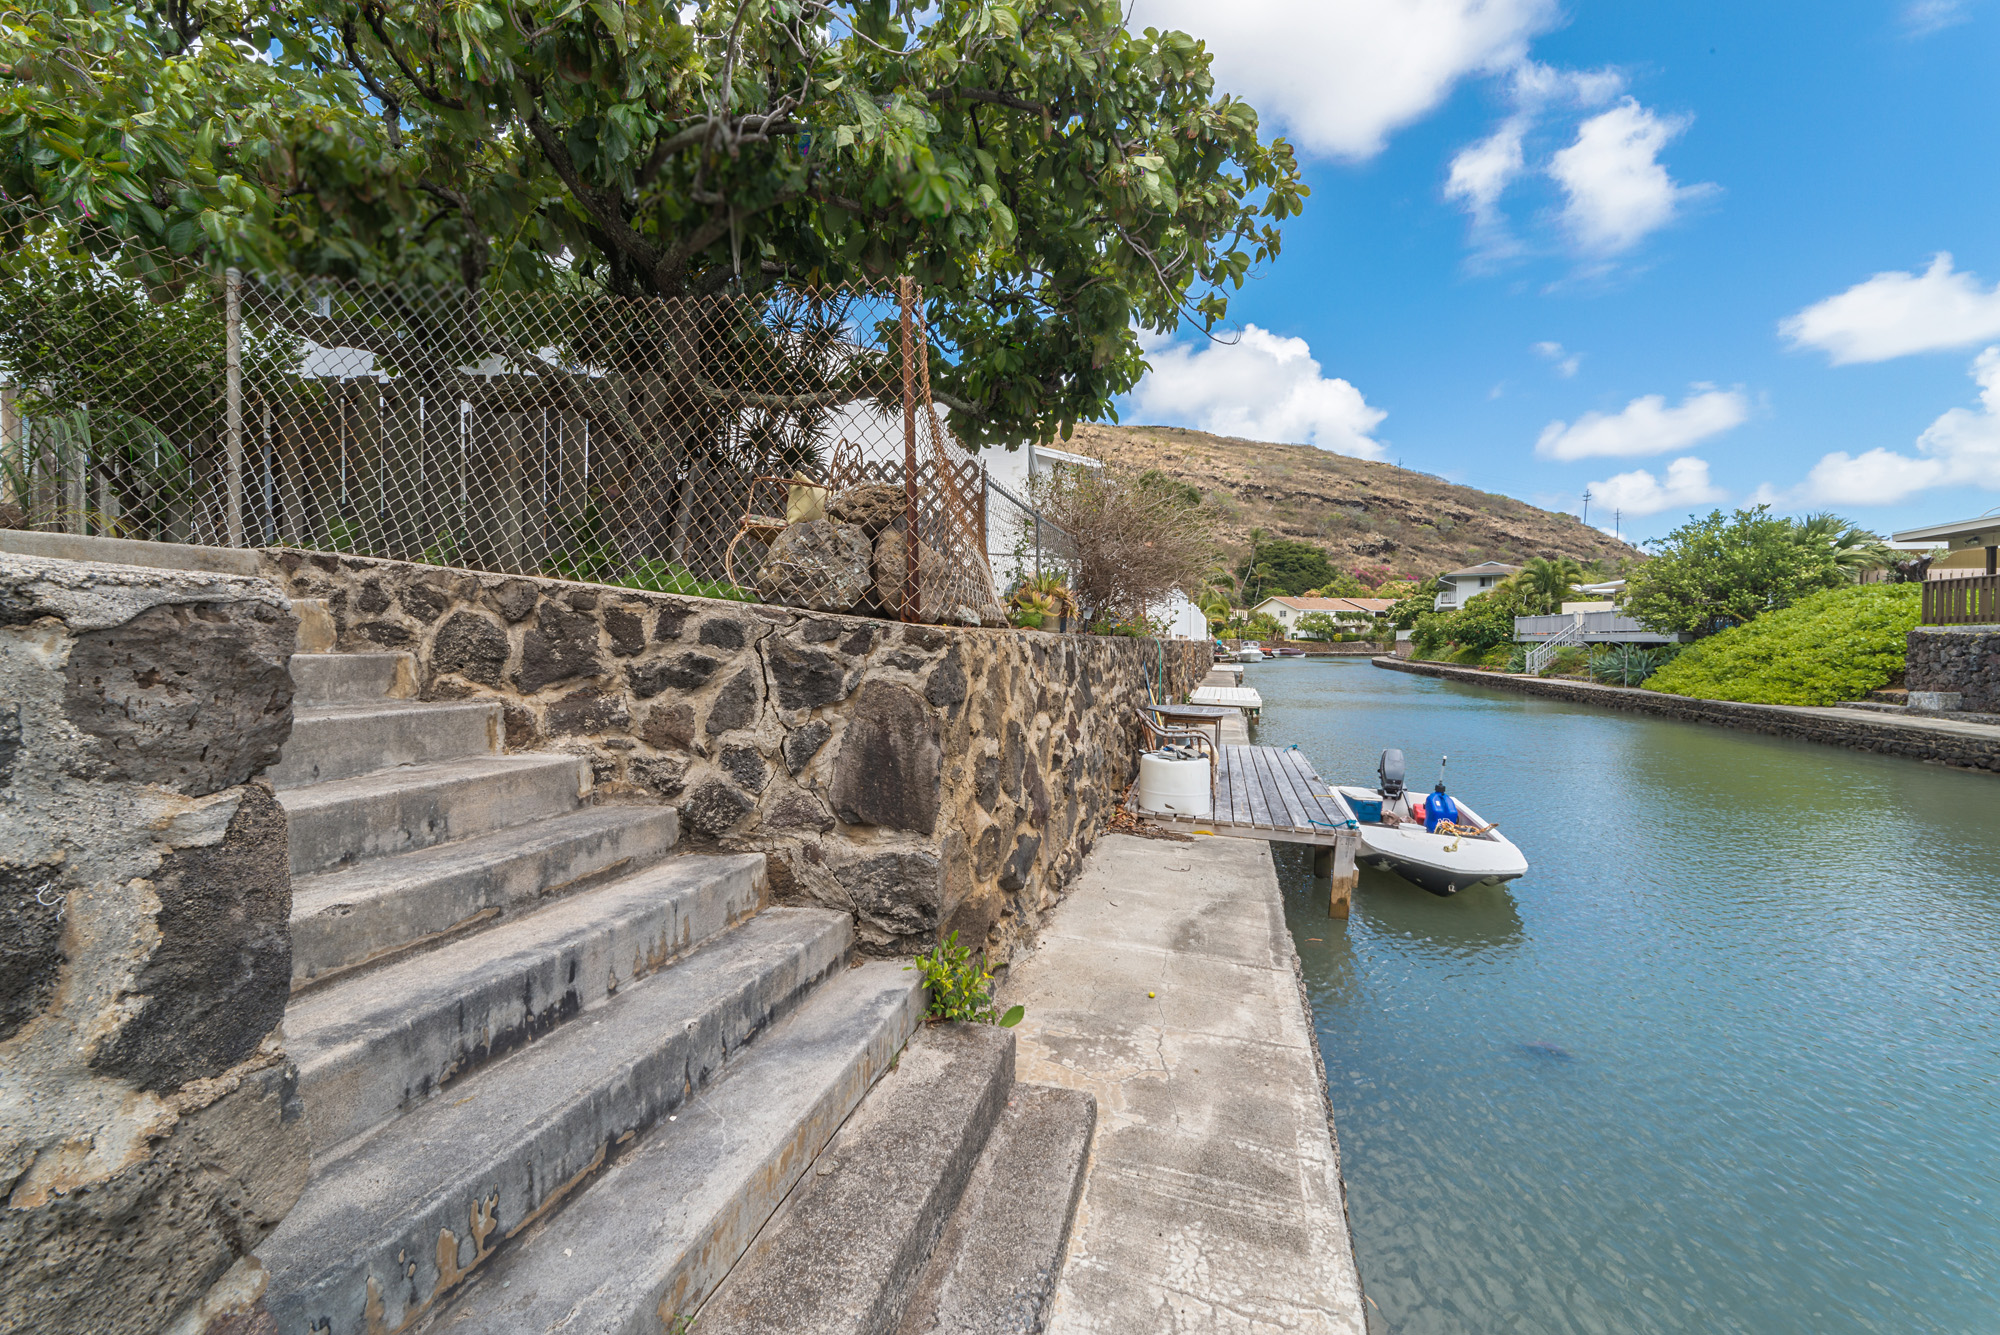 Charmant JUST LISTED FOR $700K   Waterfront Townhome In Hawaii Kaiu0027s West Marina.  This Gorgeous Townhome At Hale Makani Kai Has Been Remodeled And Is Ready  To Move ...